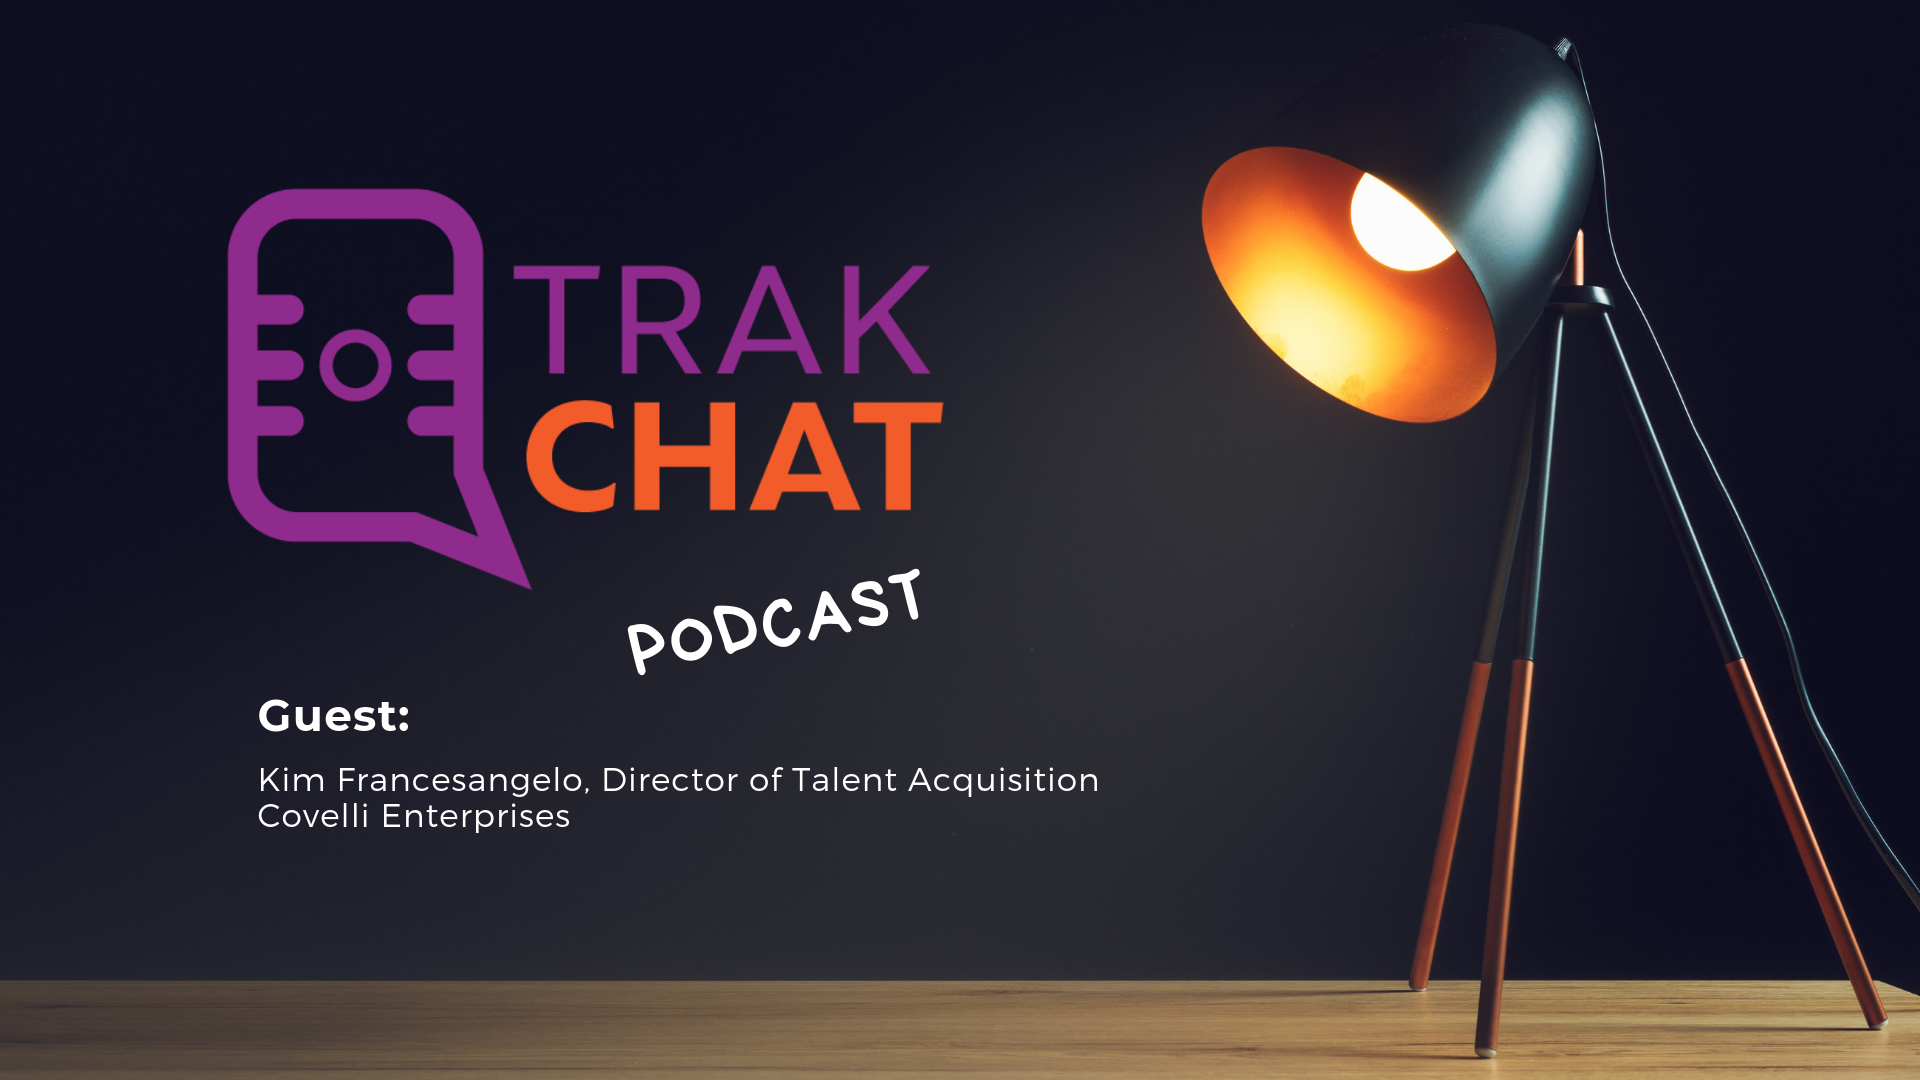 TRAK CHAT Podcast